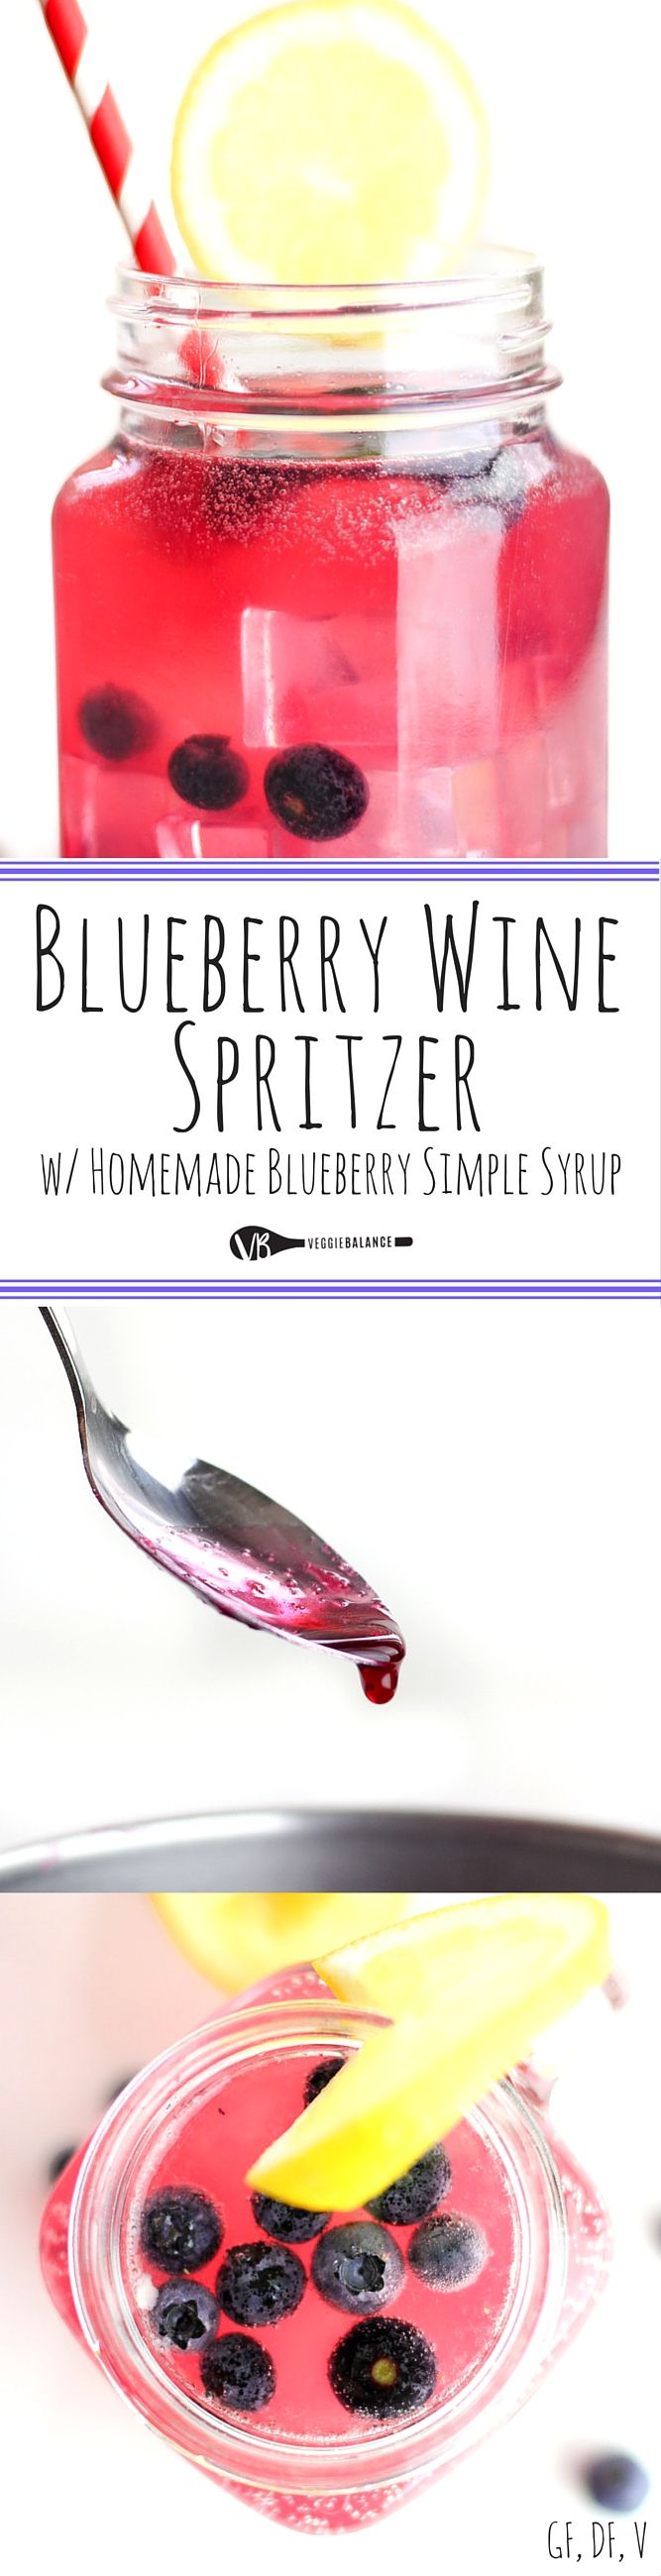 Wine Spritzer recipe with blueberries, taking summer drinks to the next level with a easy homemade blueberry simple syrup. Made in minutes, you have a refreshing drink to celebrate the summer. #CasalGarcia #ad